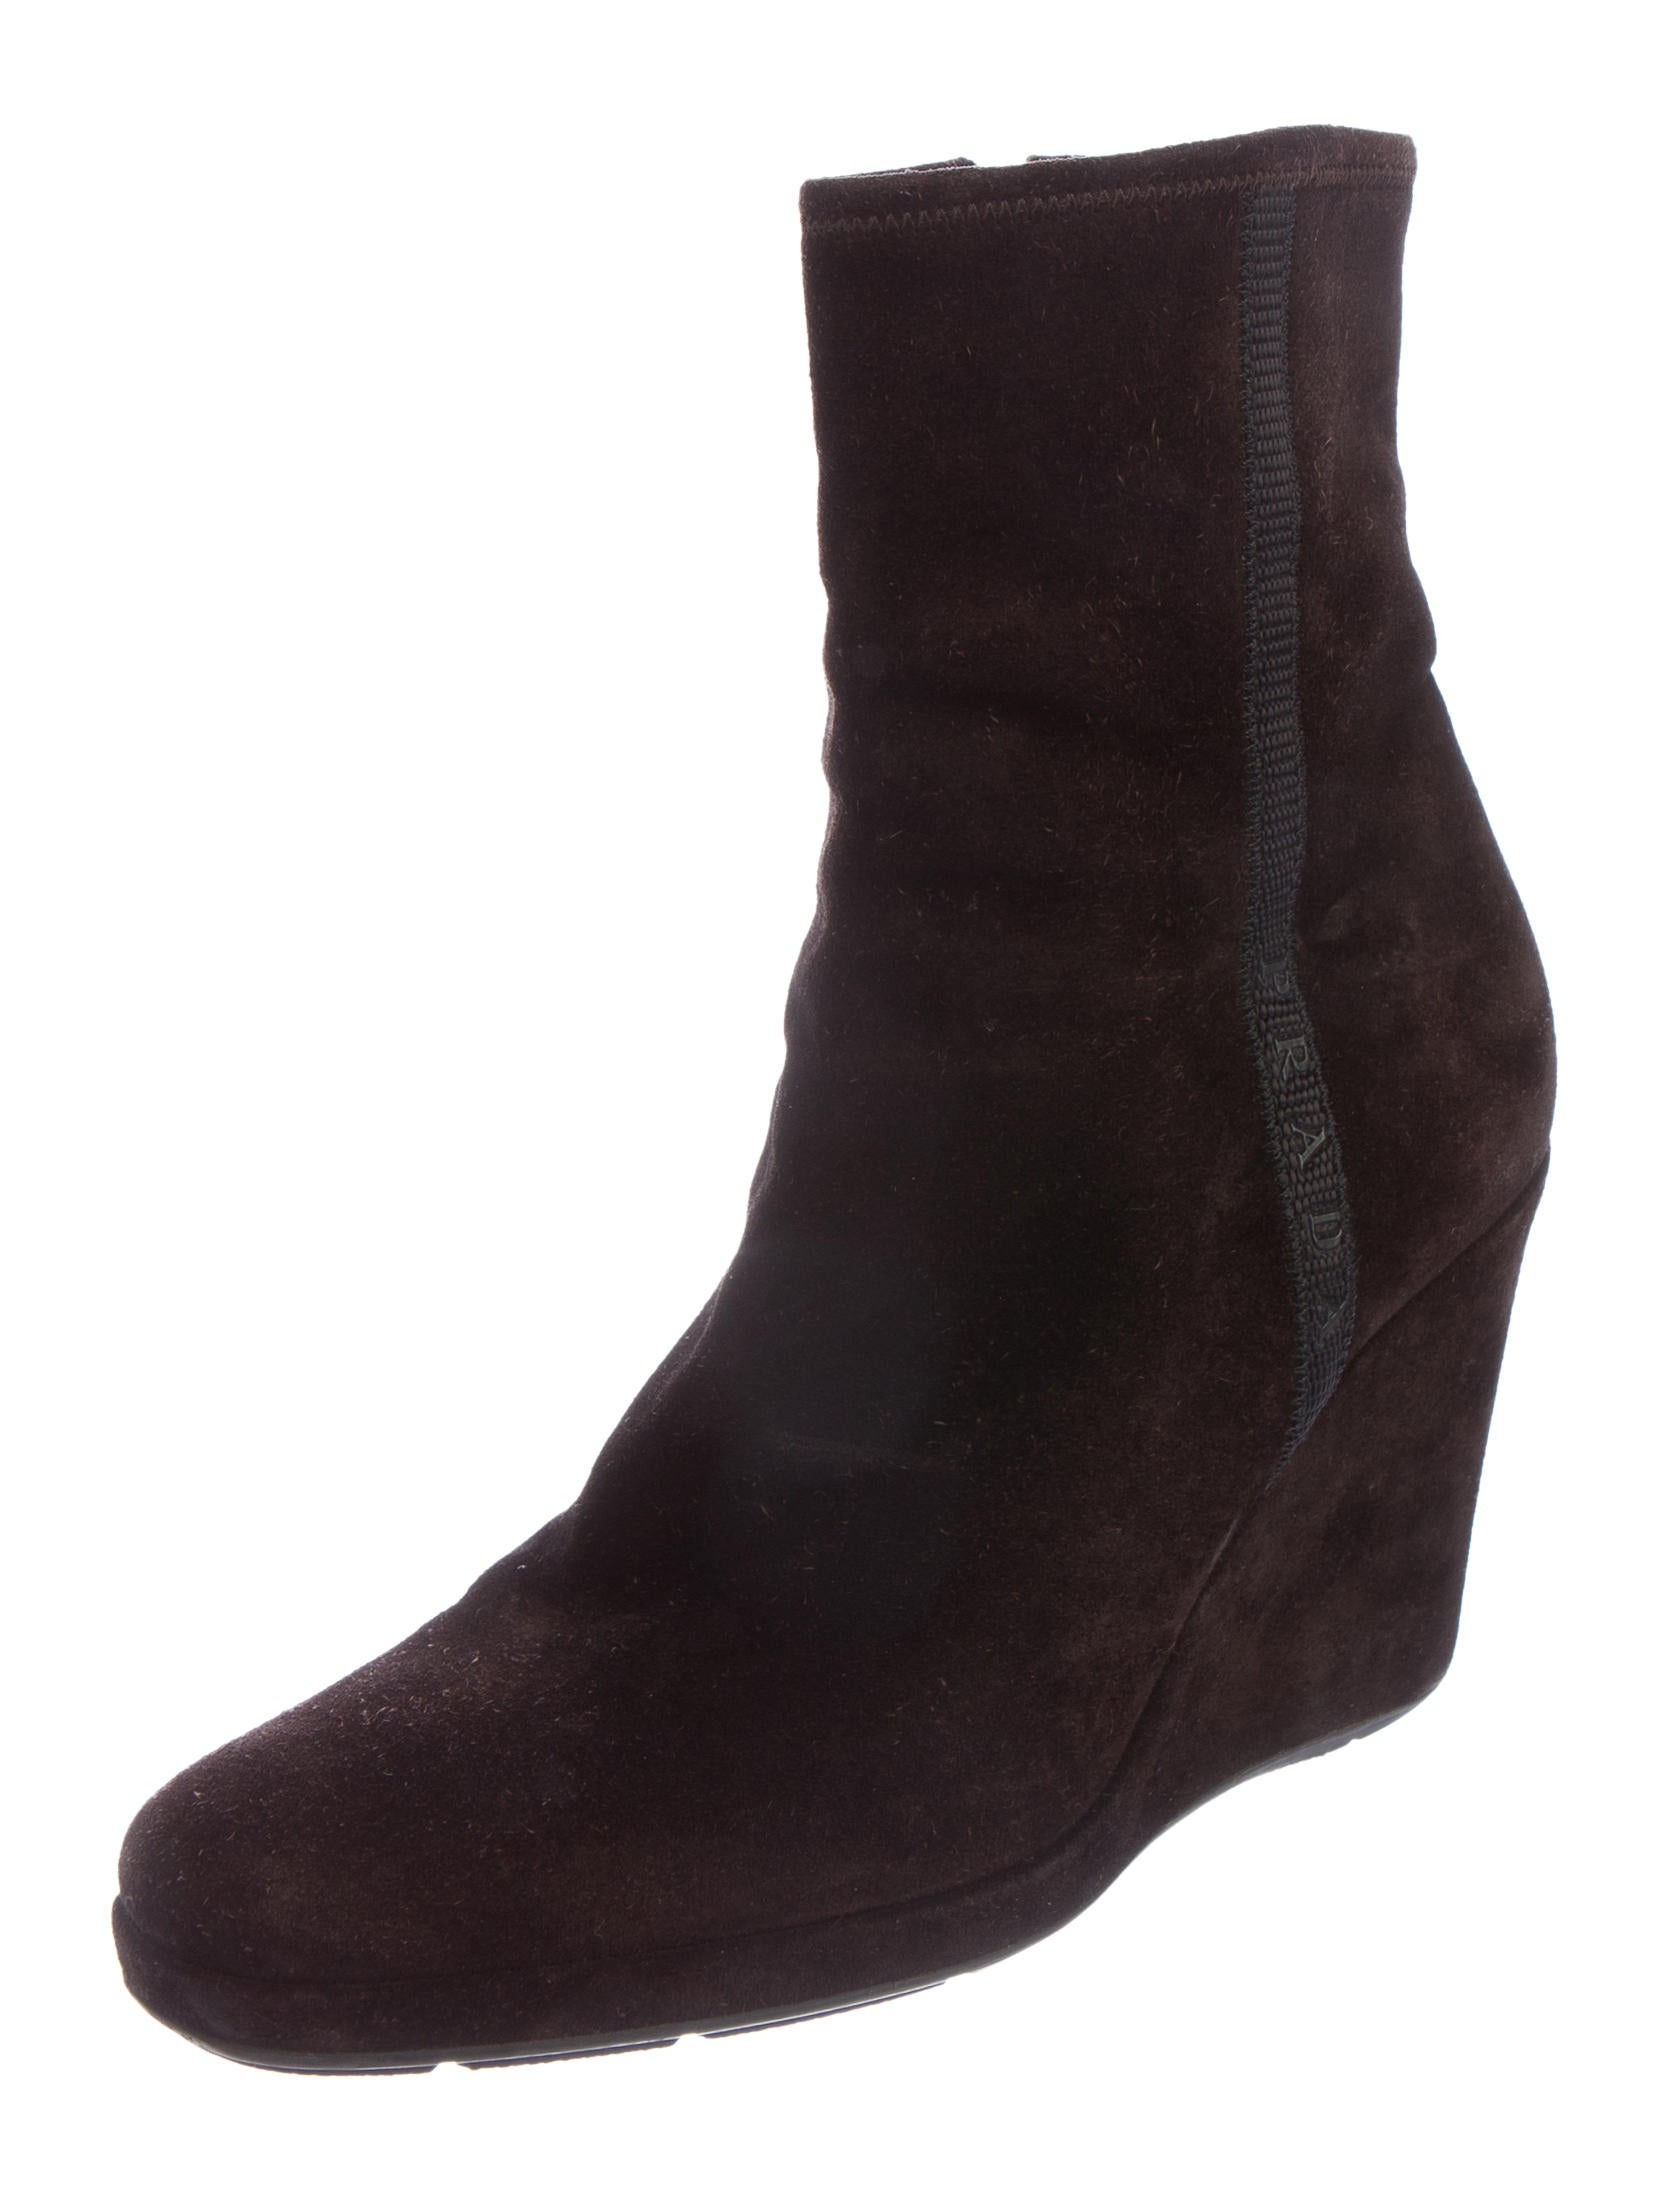 prada sport suede wedge ankle boots shoes wpr39011